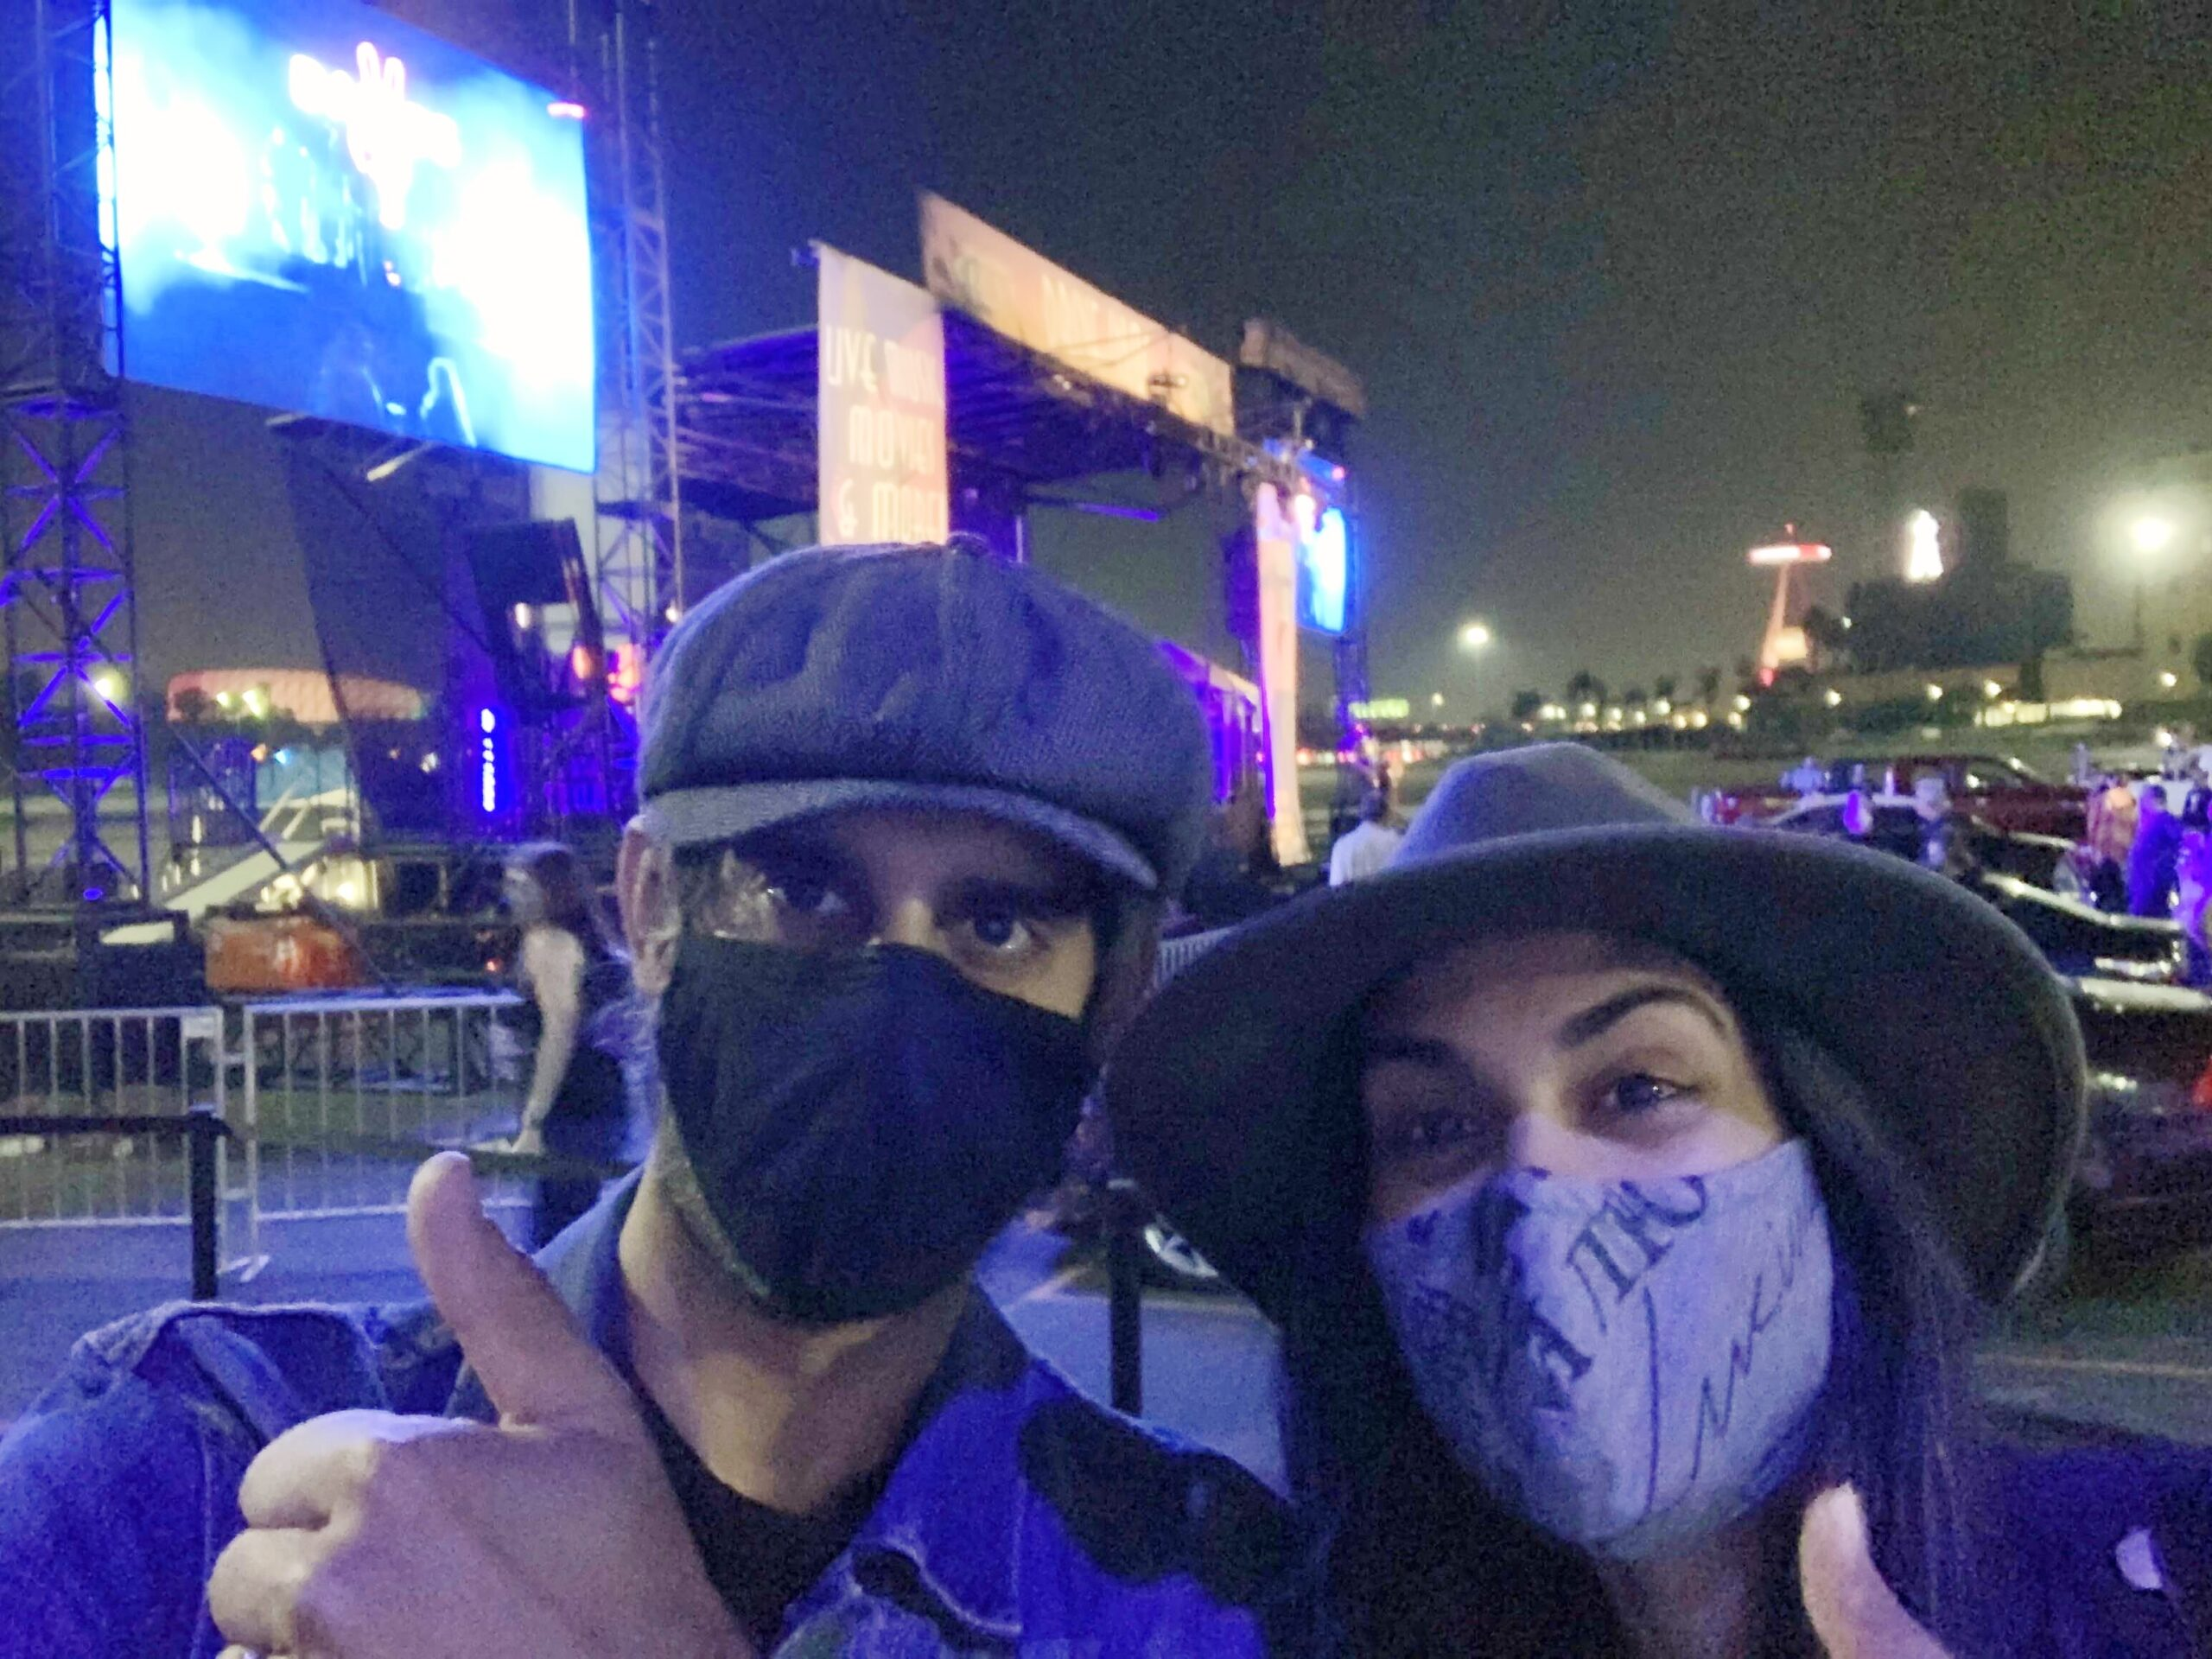 Sonya Singh and her brother attend a drive-in concert last fall. It was their one live-music experience during the pandemic, and they've never been happier to hang out in a parking lot. [Photo courtesy of Sonya Singh]